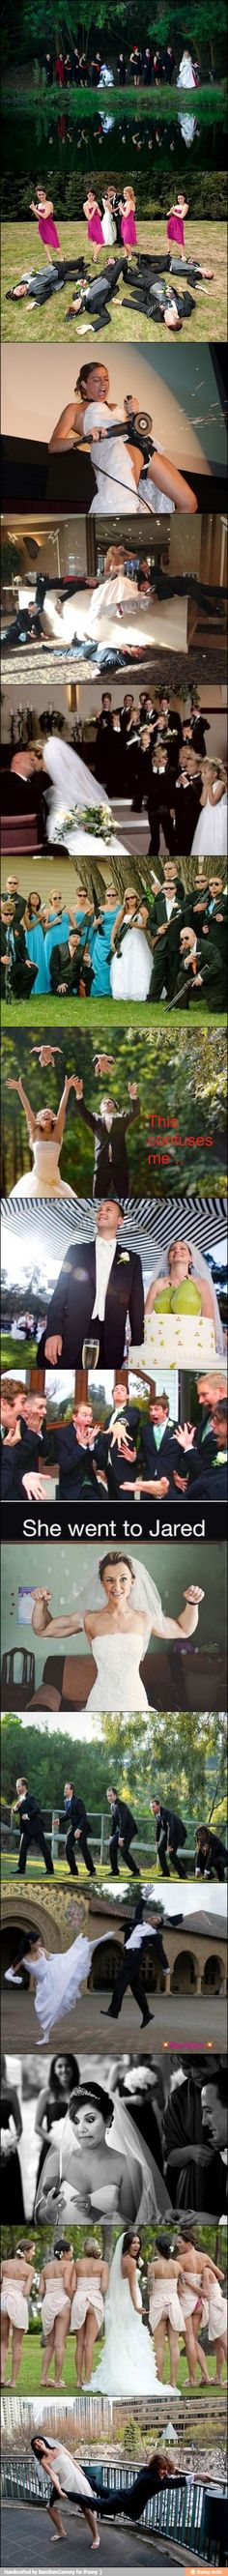 """Amazing wedding pics / iFunny :) Well... for me this is """"what not to do on wedding pics""""."""